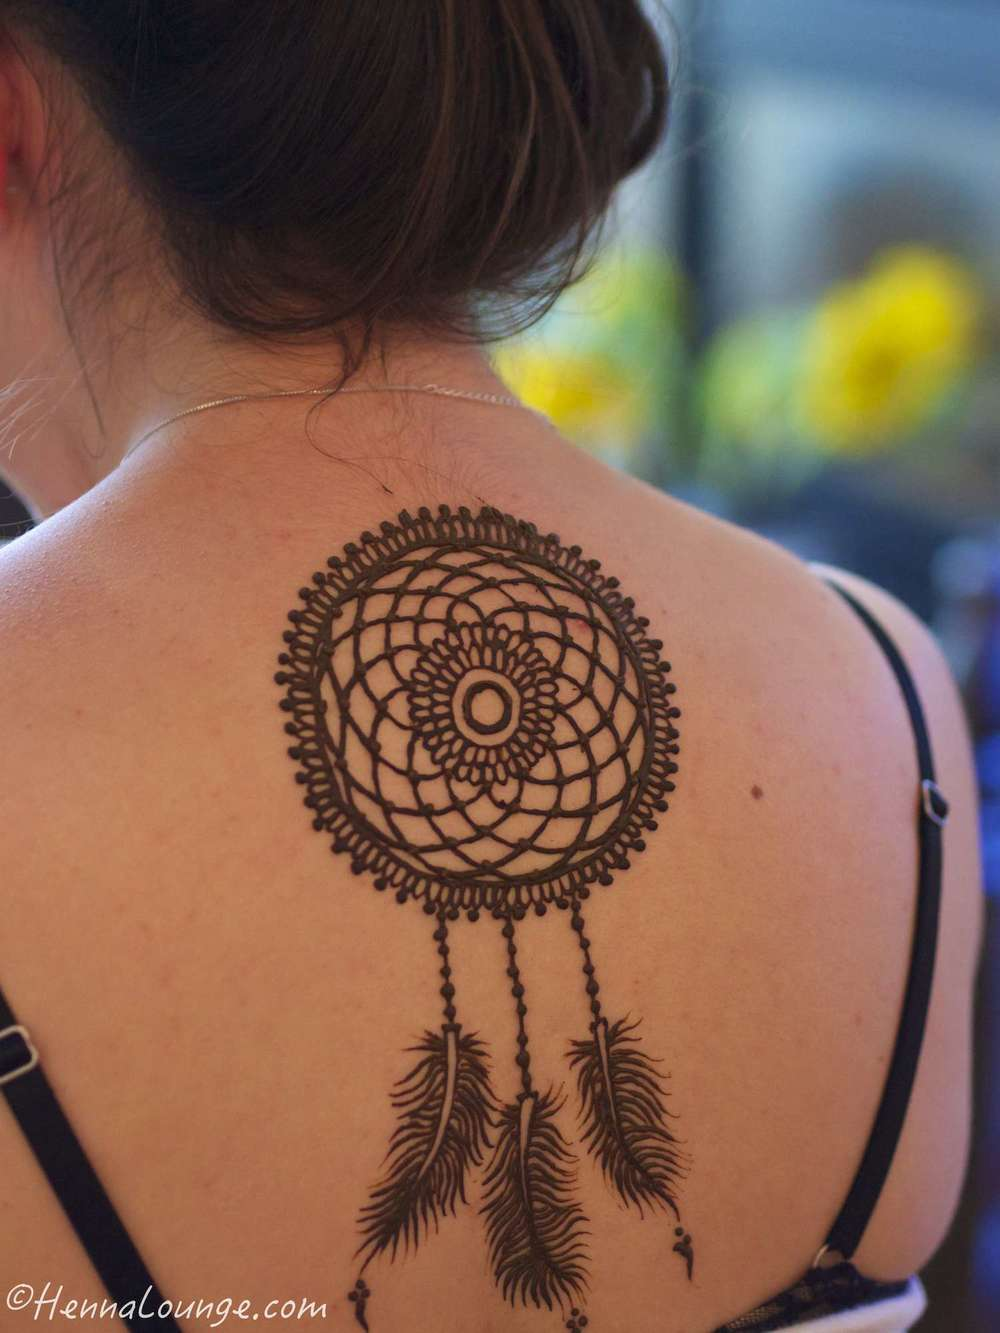 Dreamcatcher for a festival-goer (Electric Daisy Carnival)